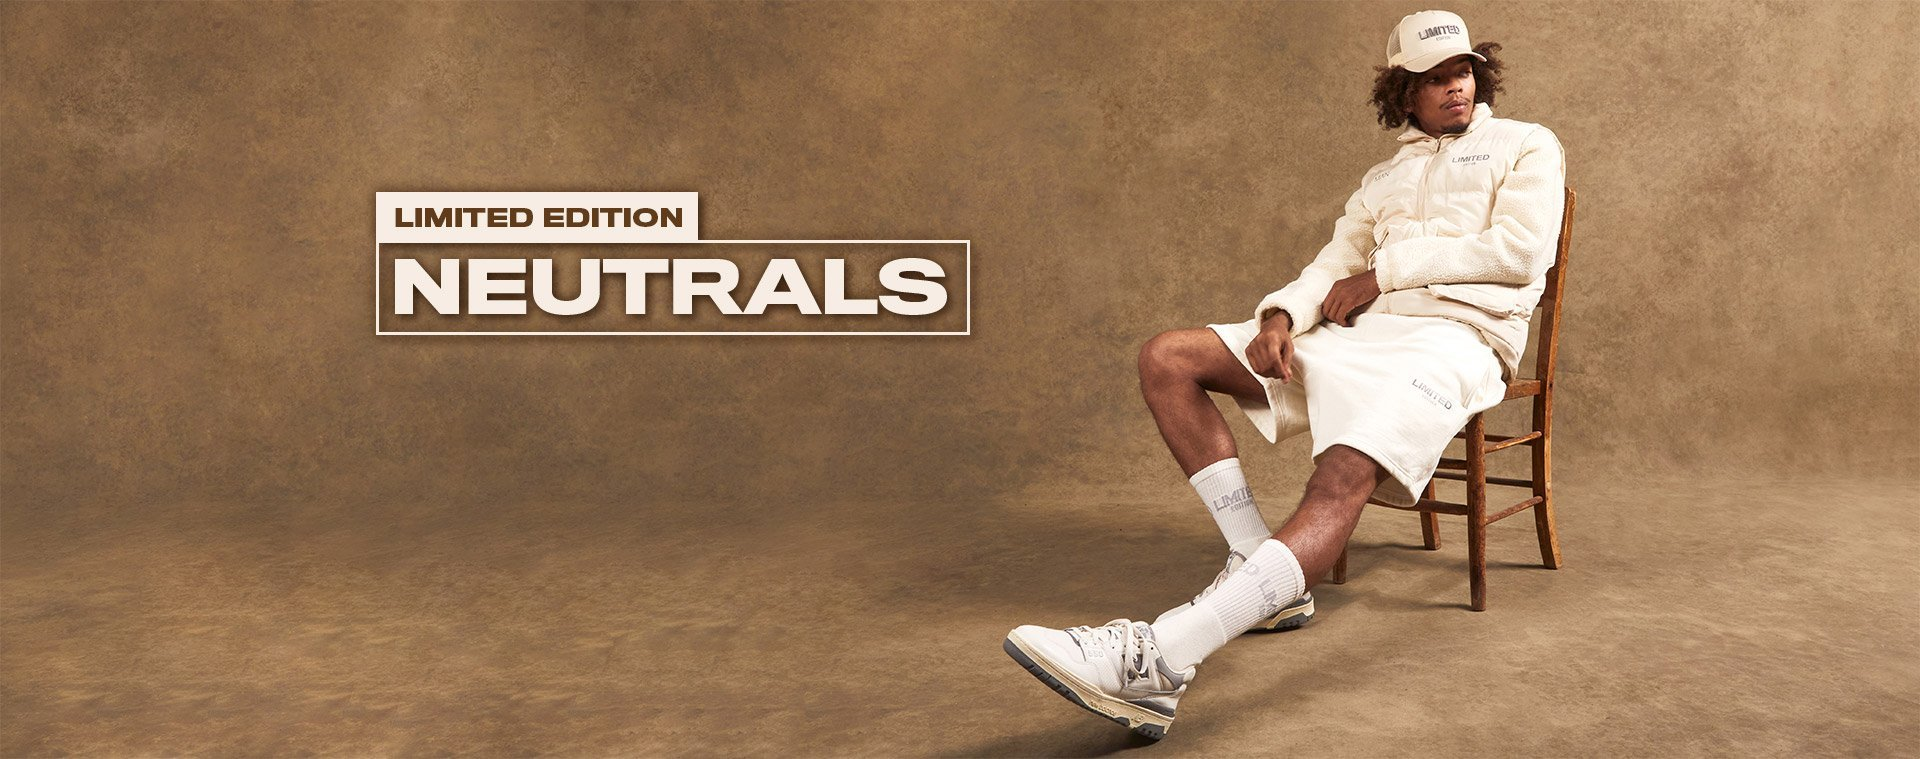 Limited Edition Neutrals